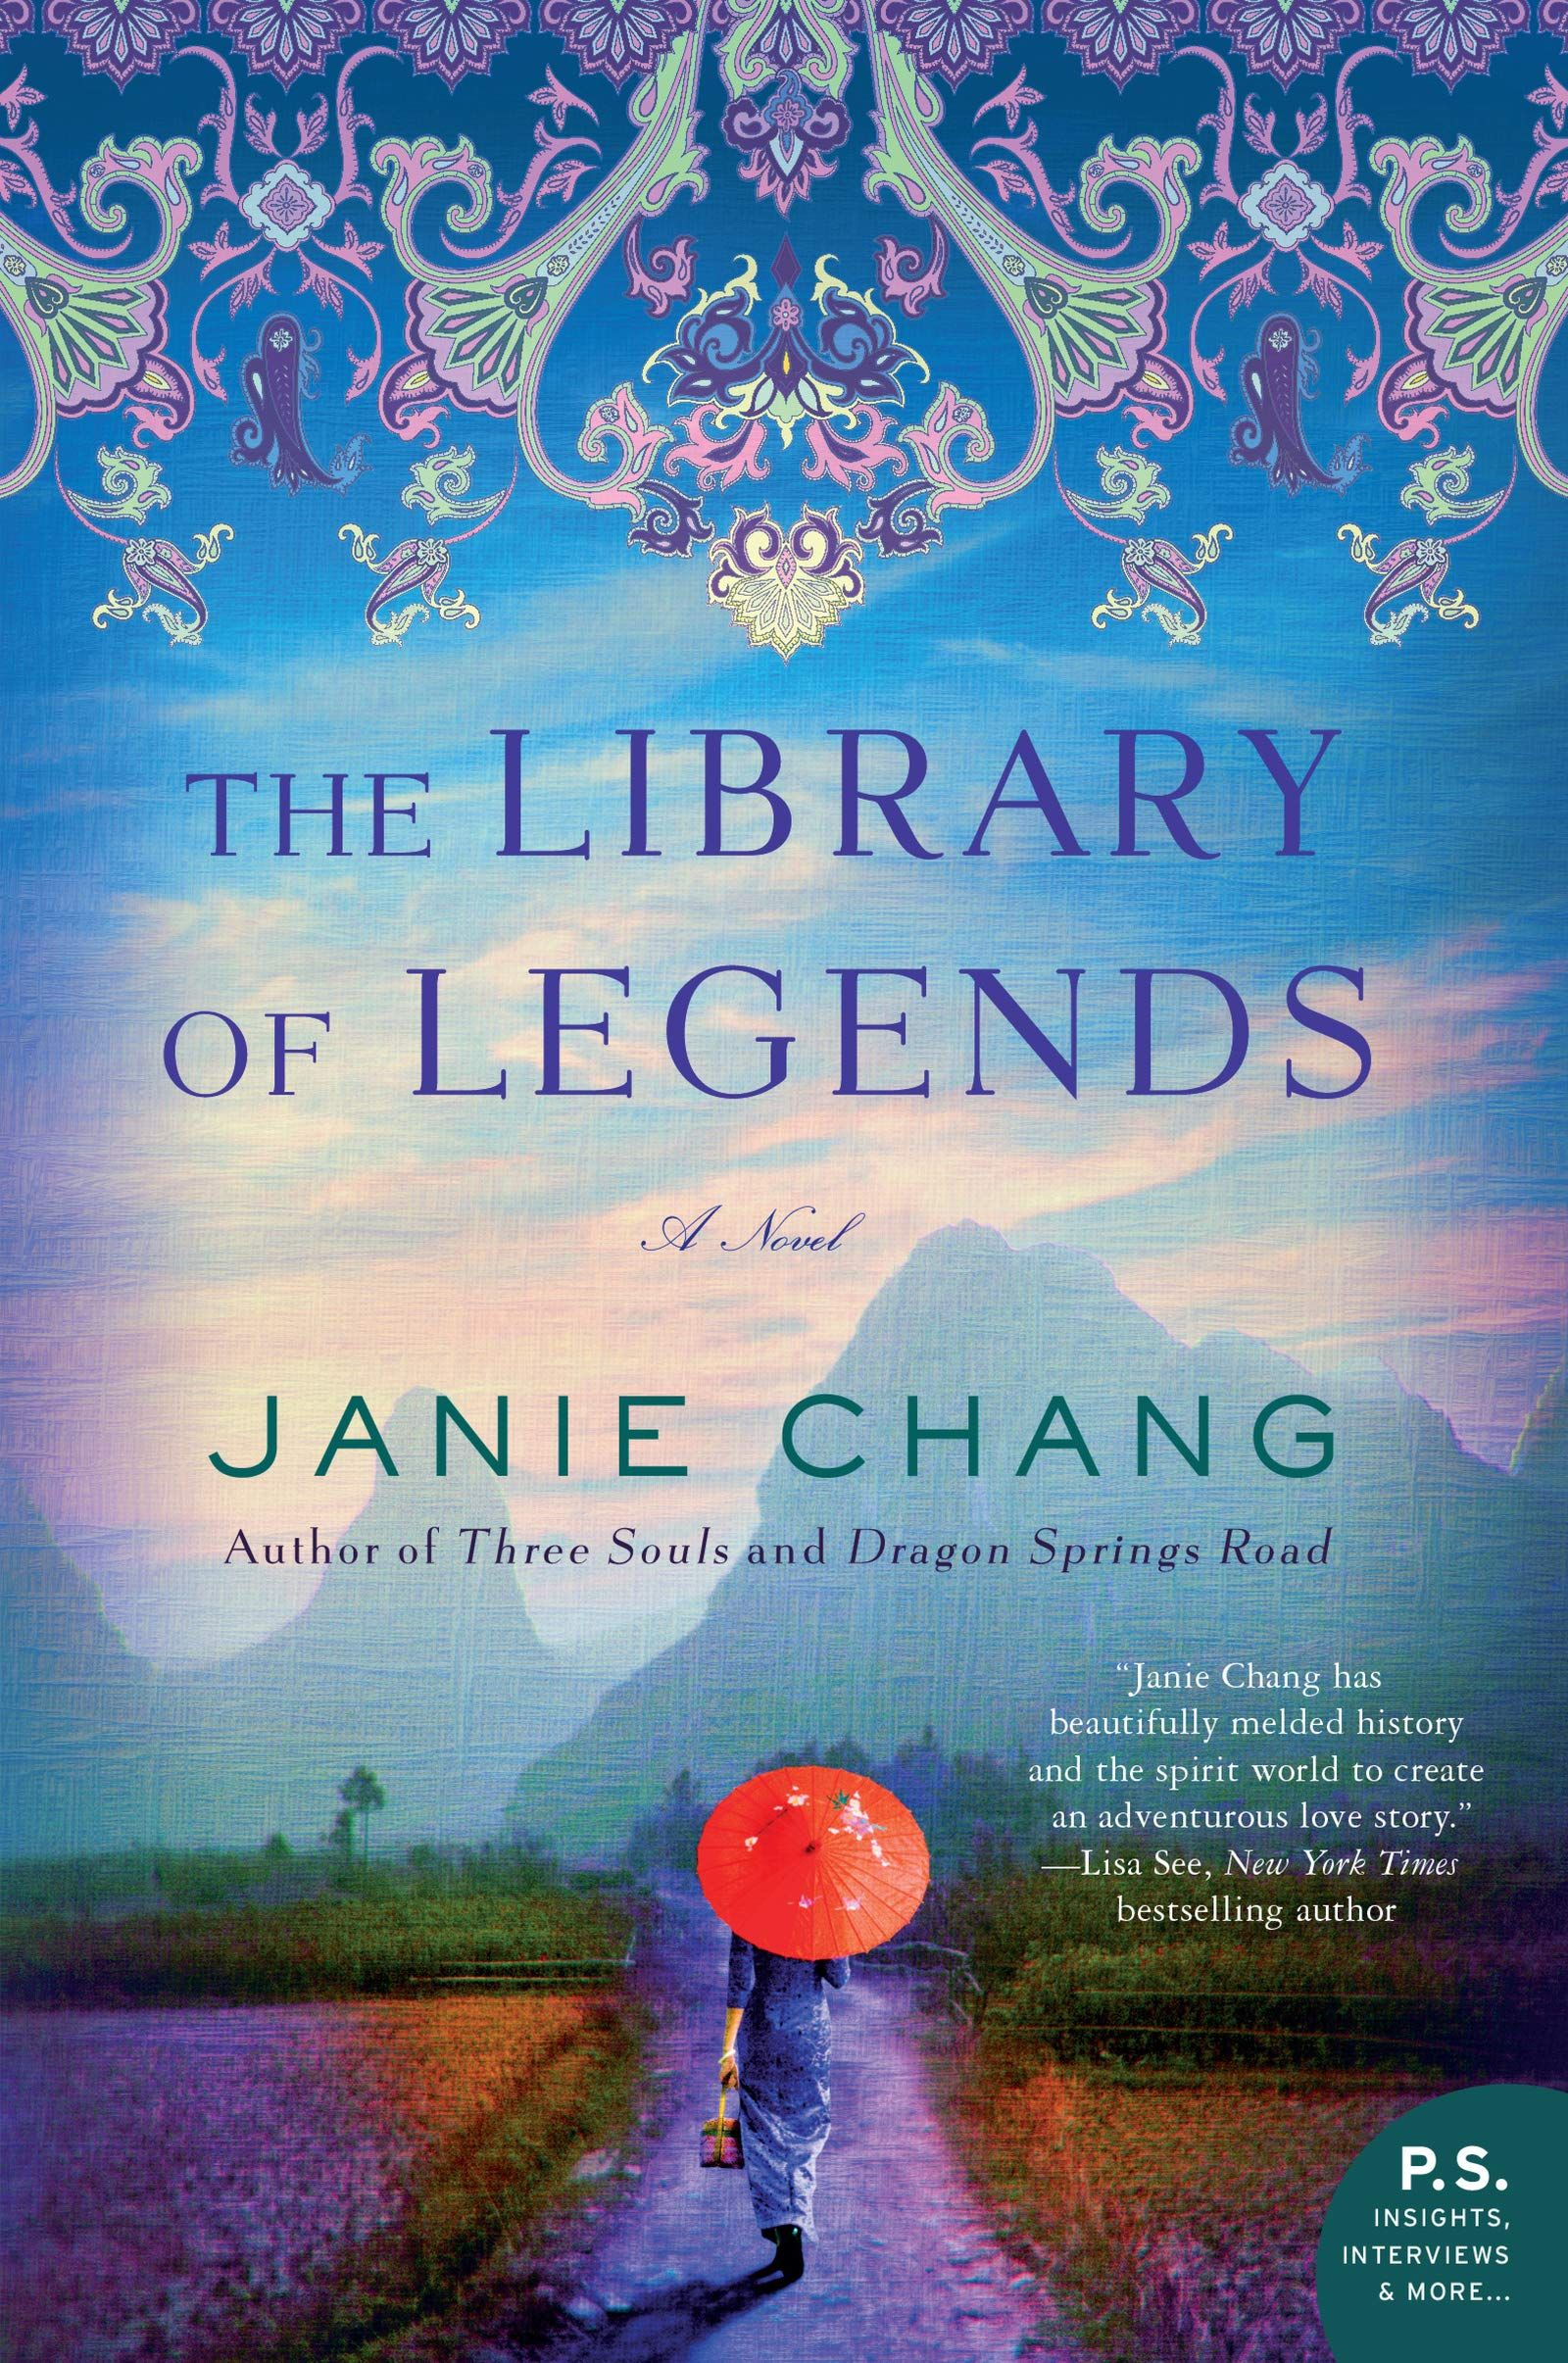 Interview With The Author At Https Newbooksnetwork Com Janie Chang The Library Of Legends William Morrow 2020 In 2020 Books Historical Novels Novels